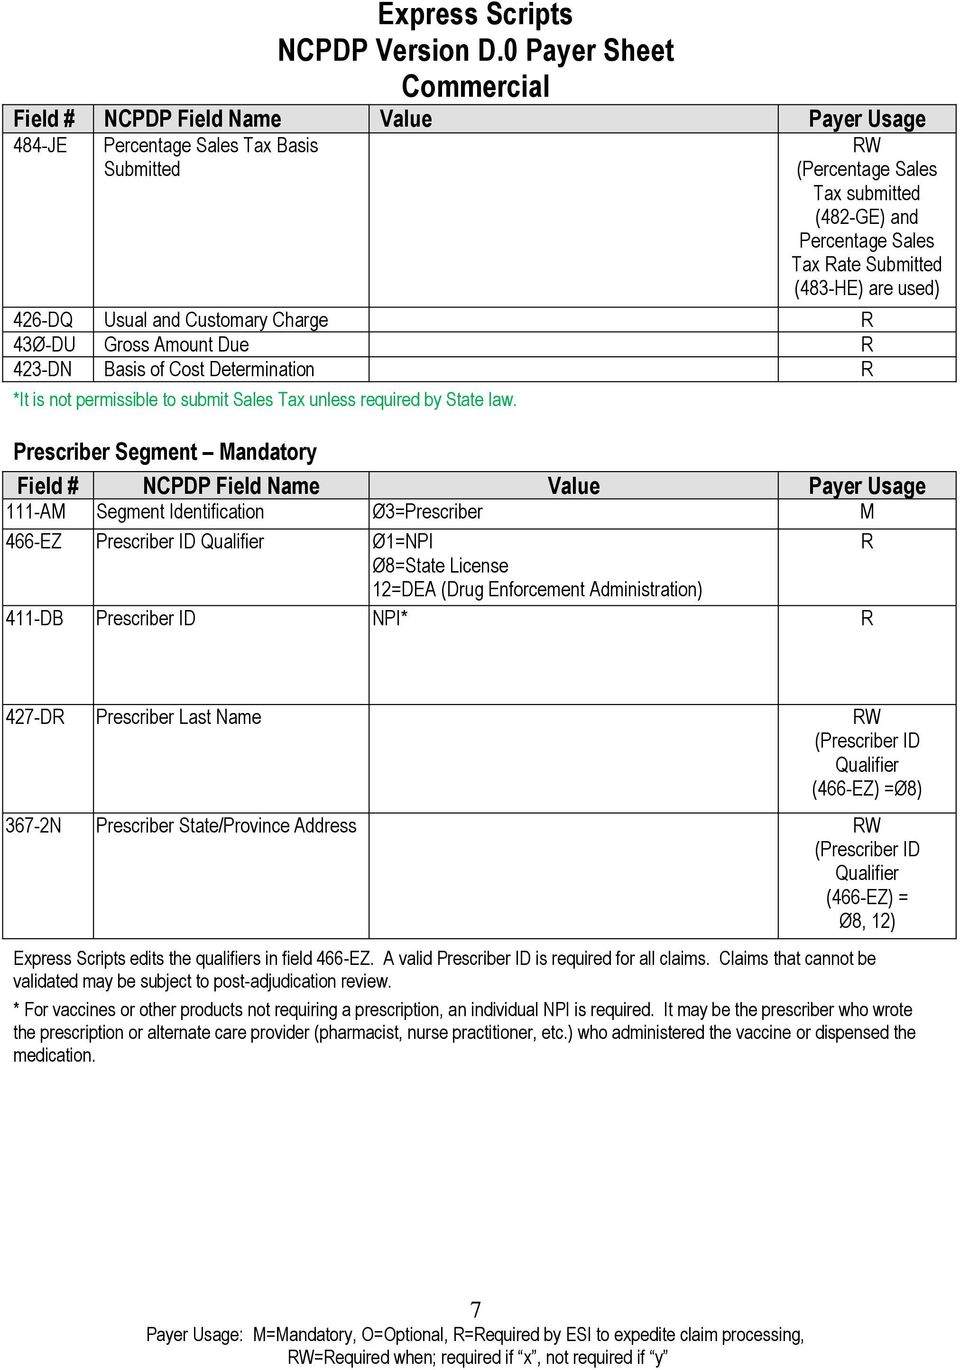 Express Scripts NCPDP Version D 0 Payer Sheet Commercial - PDF